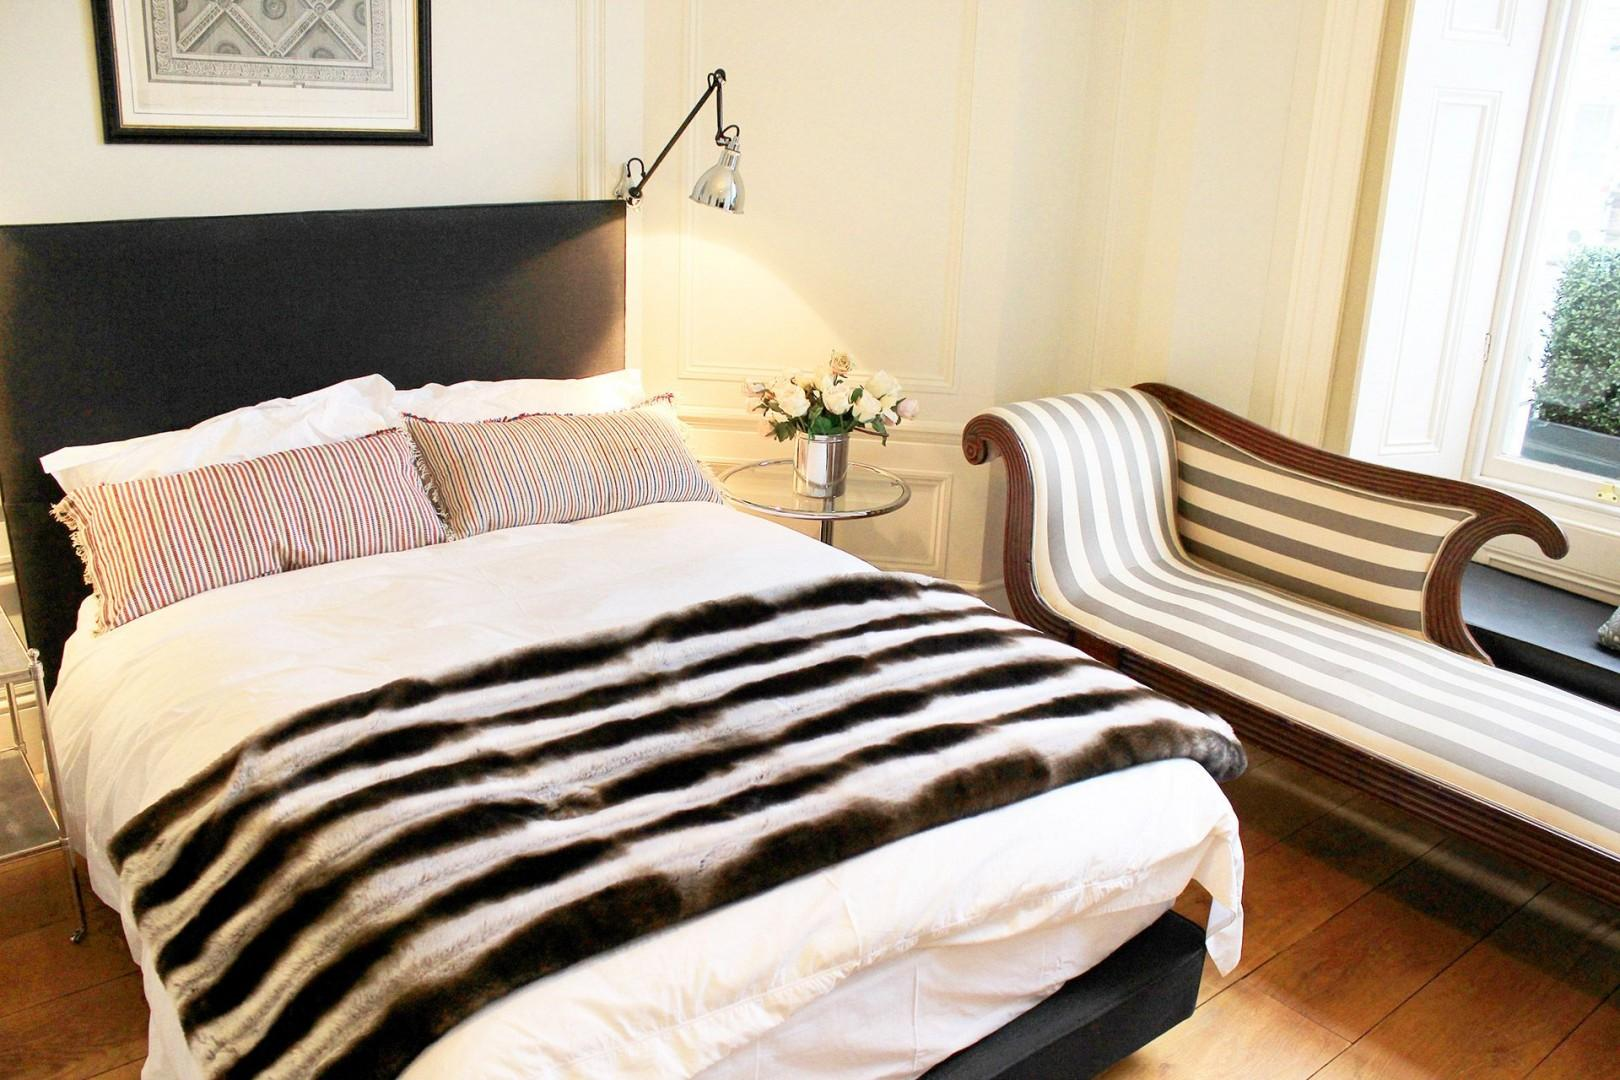 Beautiful bedroom with comfortable bed and chaise longue